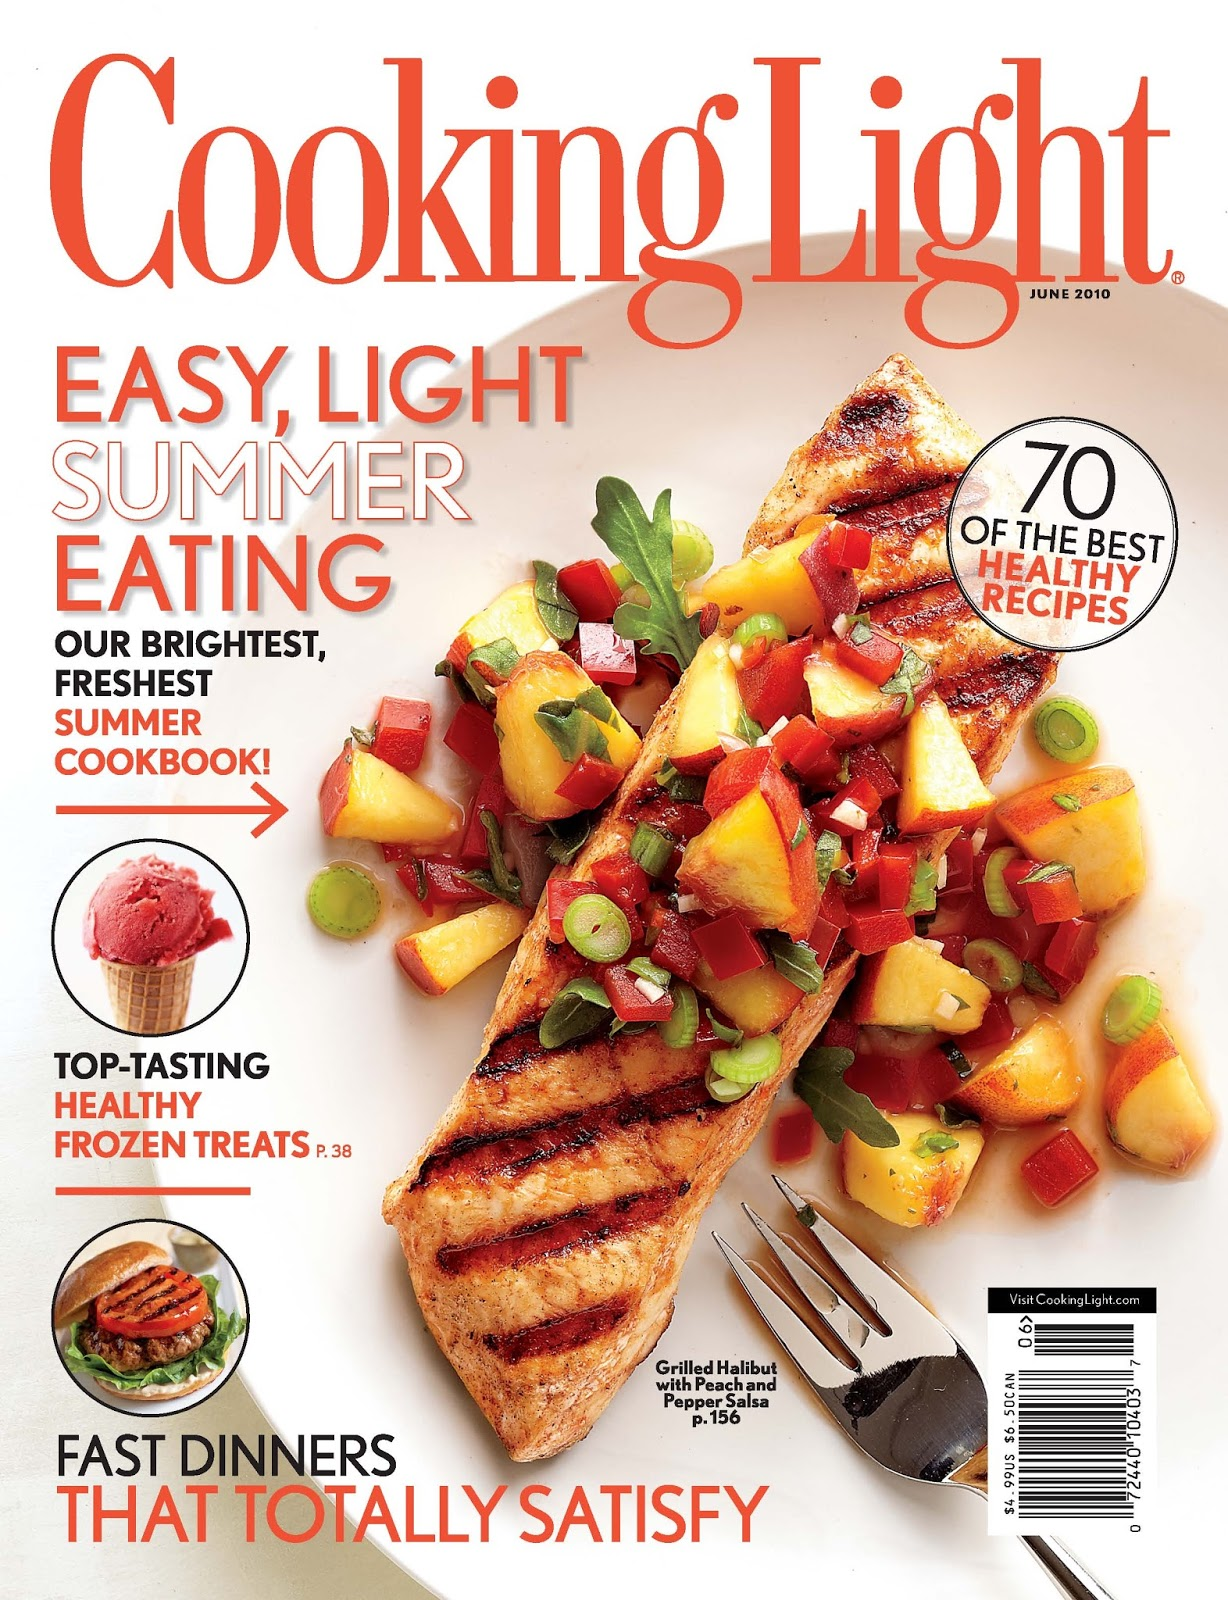 Find quick and healthy recipes, nutrition tips, entertaining menus, and fitness guides to help you make smart choices for a healthy lifestyle from Cooking Light magazine.